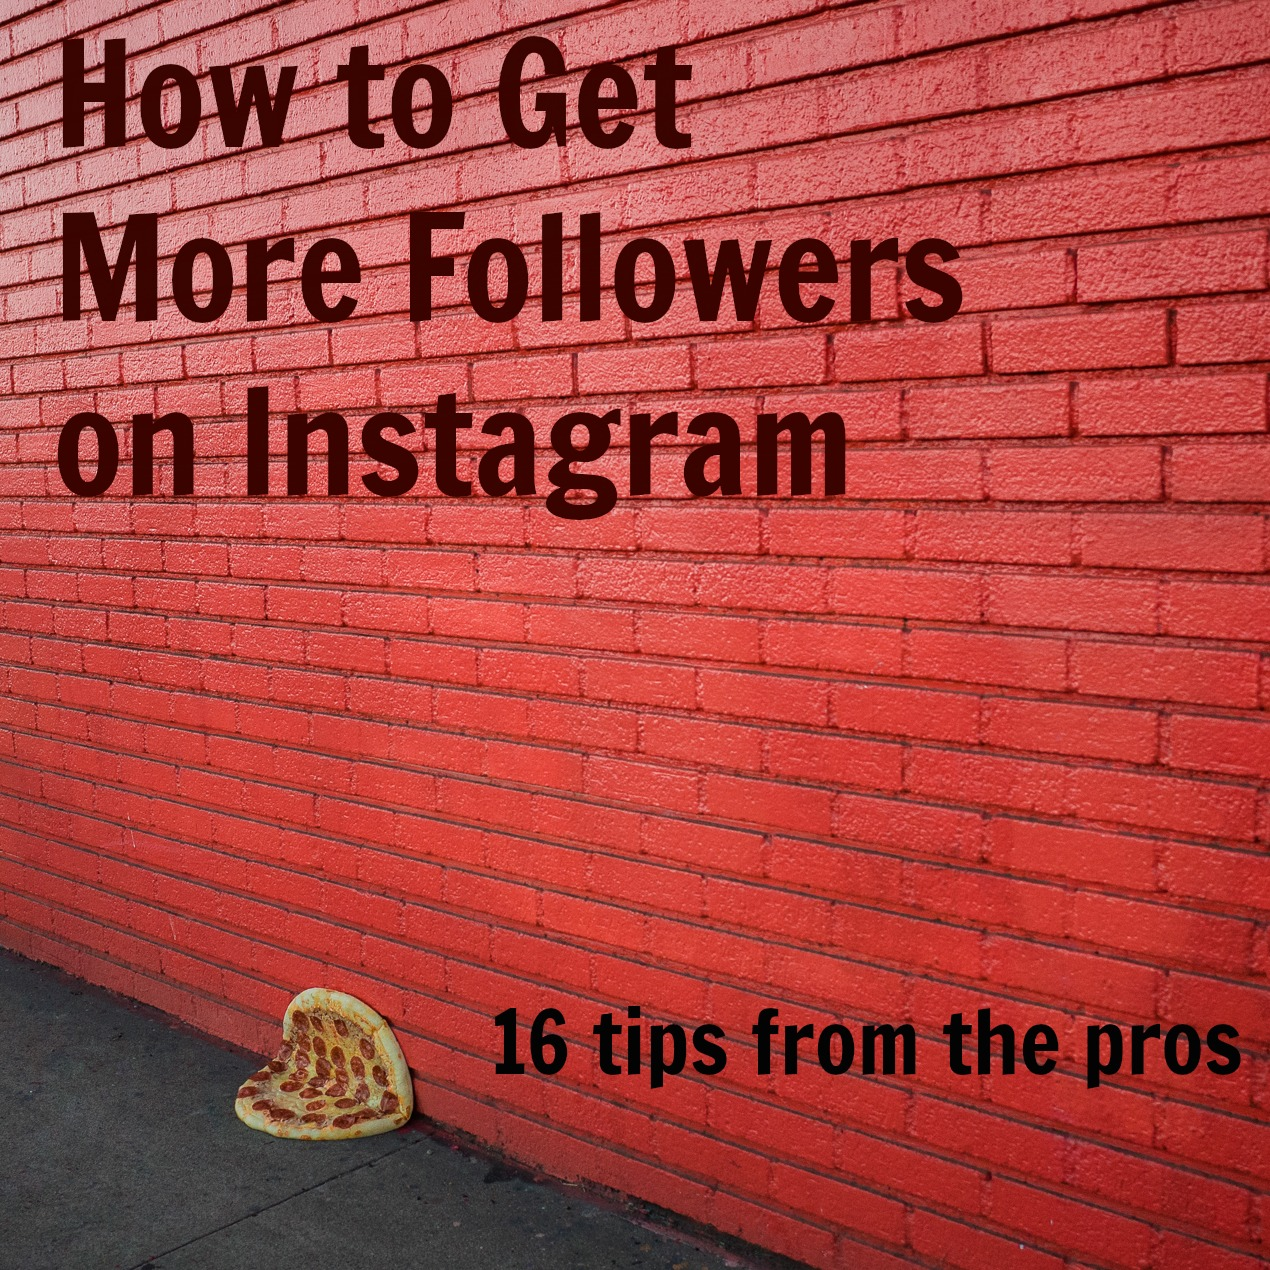 warlock how to get followers